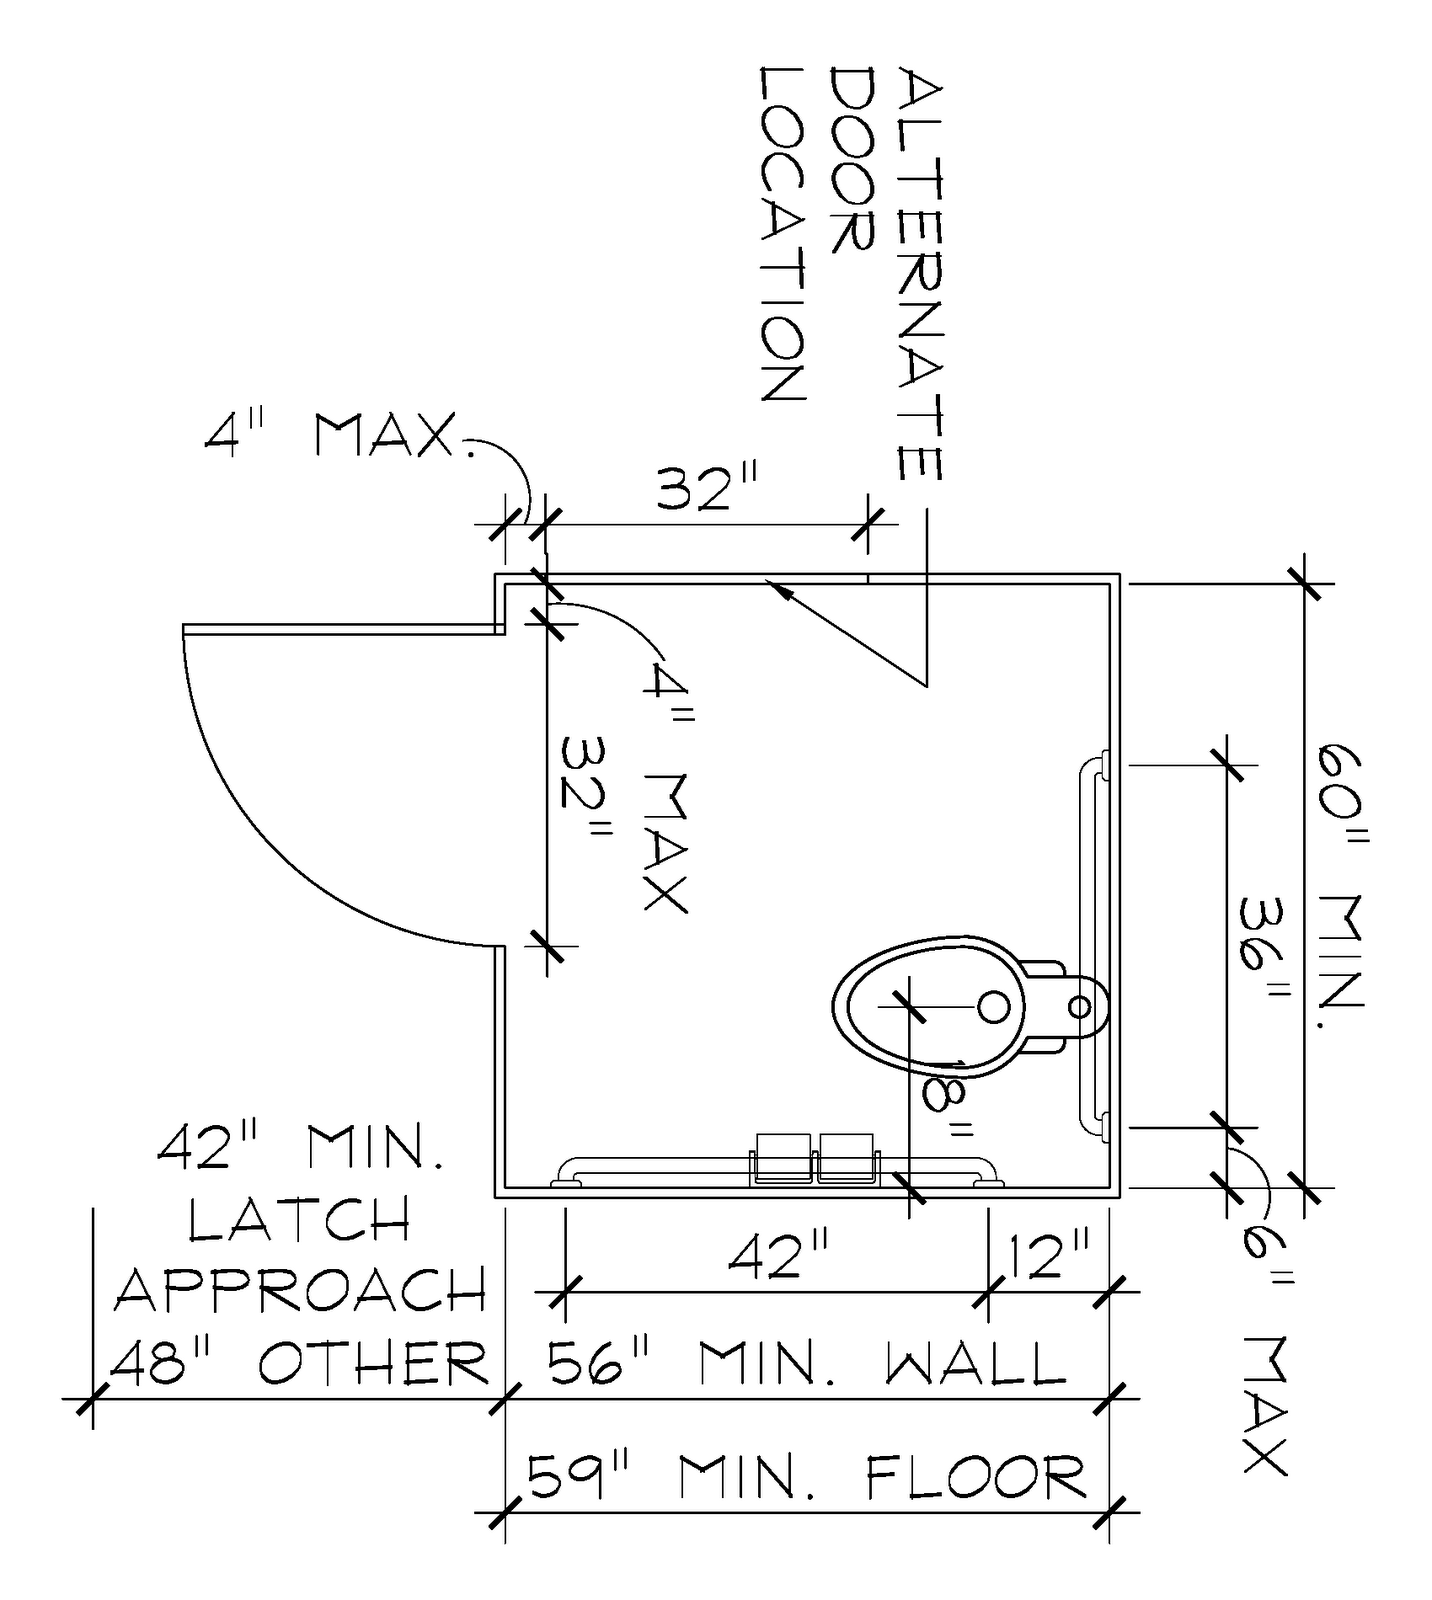 Shower Stall Diagram 1991 Toyota 4runner Stereo Wiring Ada Toilet Paper Holder Location With Weight And Grab Bar